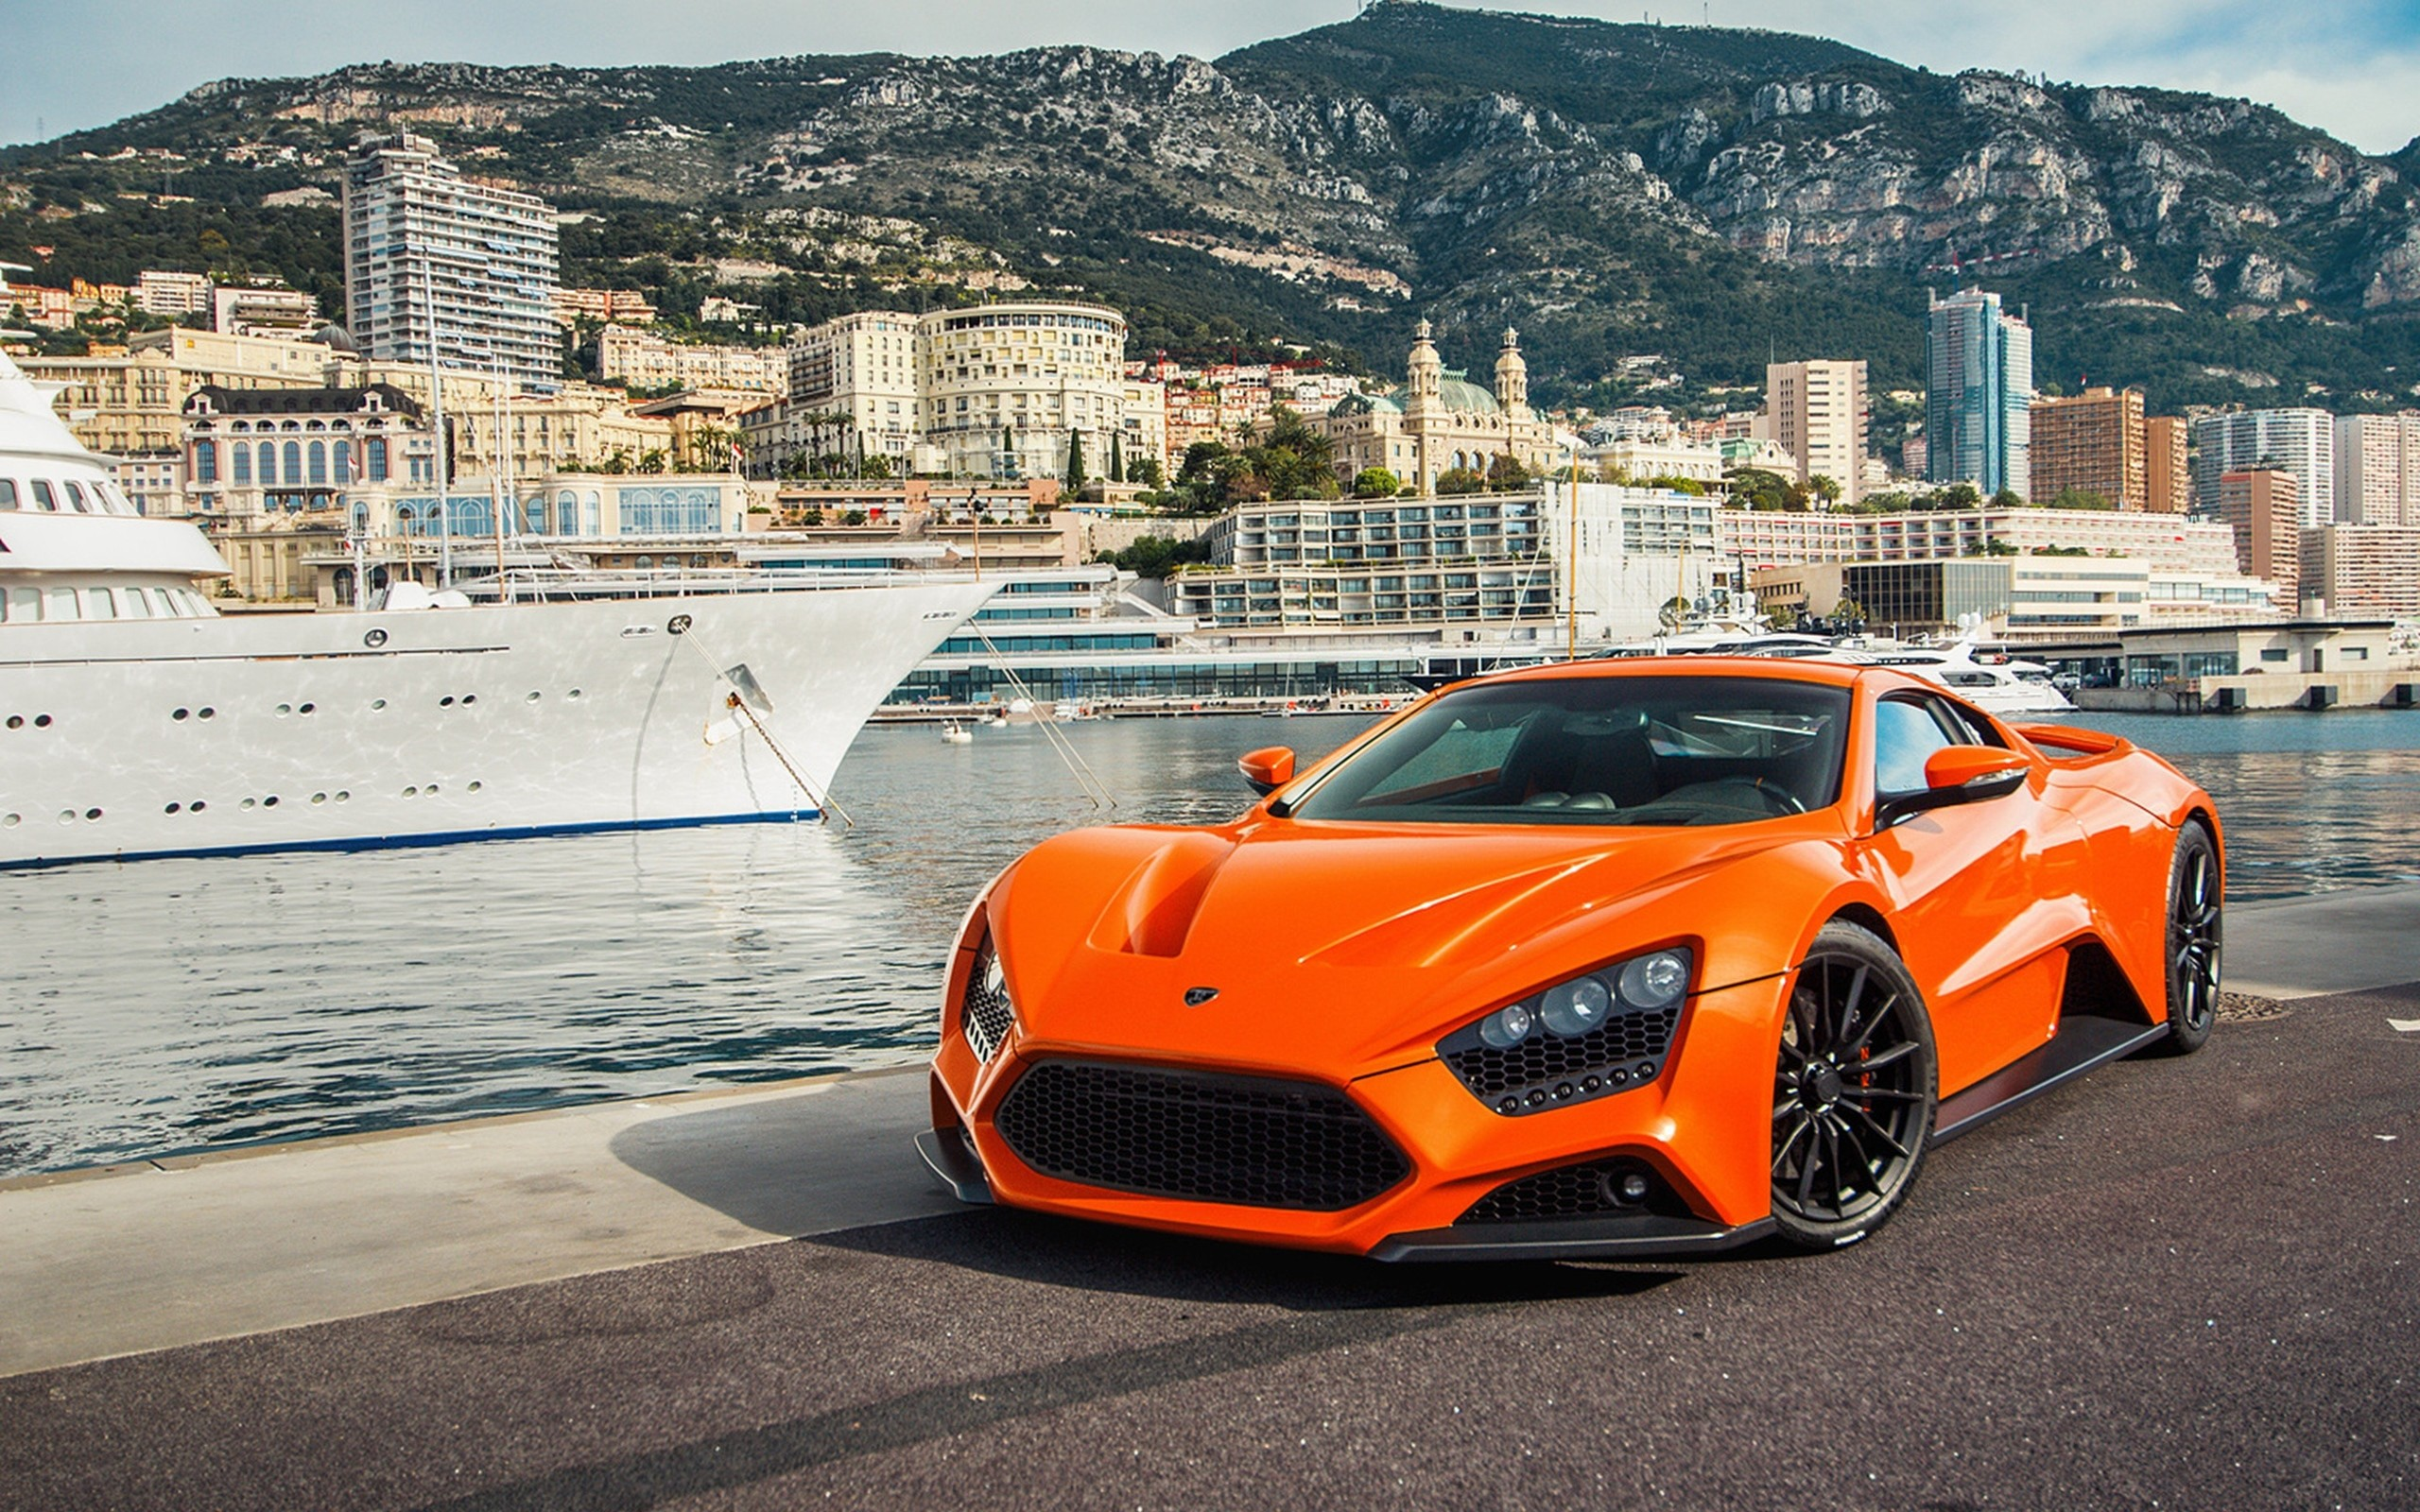 Res: 2560x1600, ... car wallpapers high quality screen desktop high quality car pictures ...